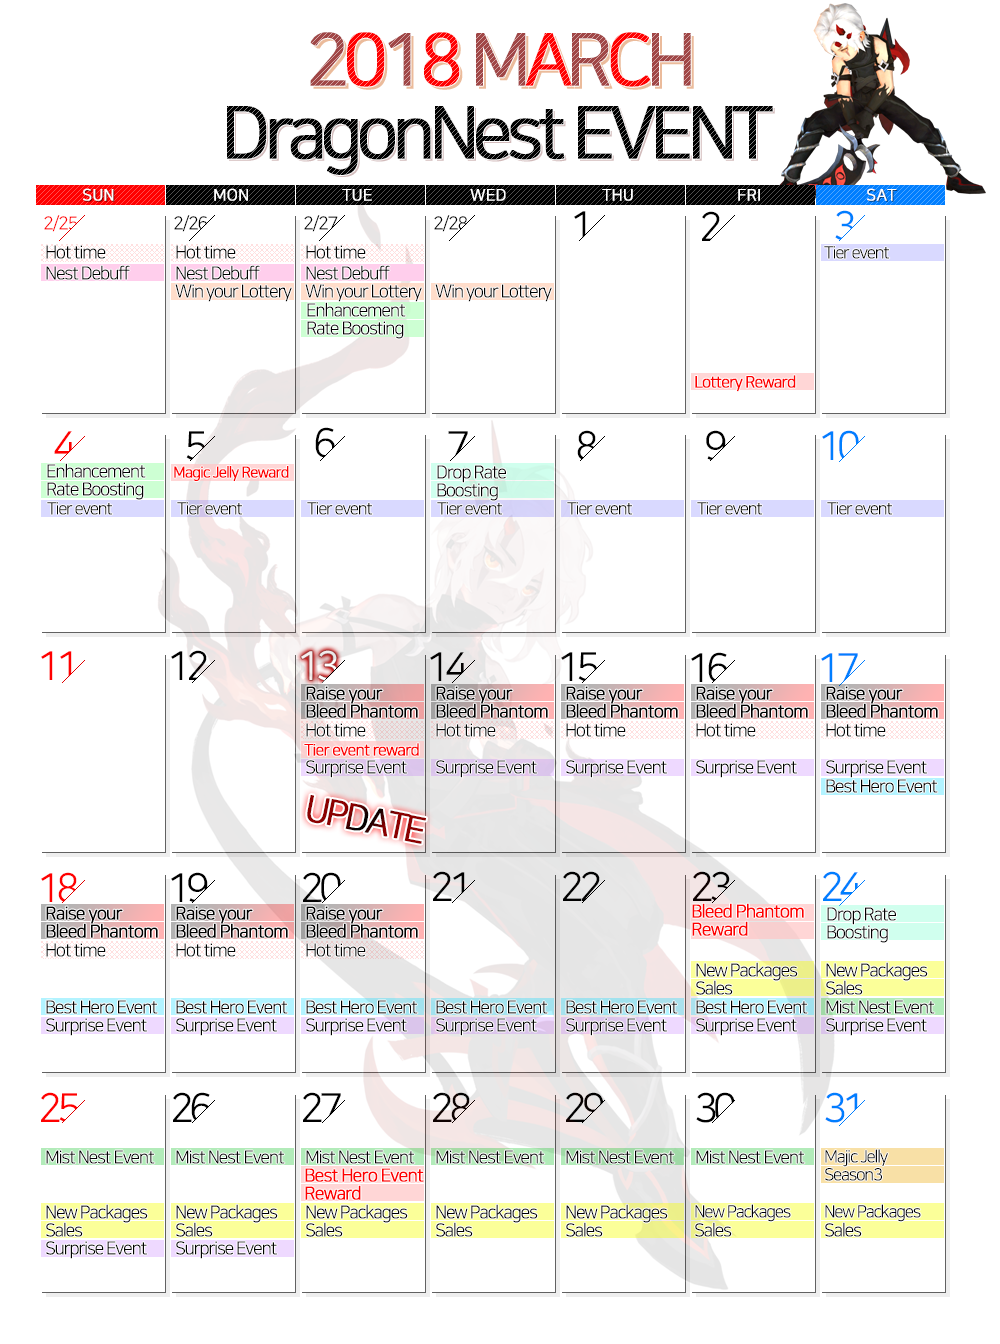 update event calendar for march 2018 dragon nest sea